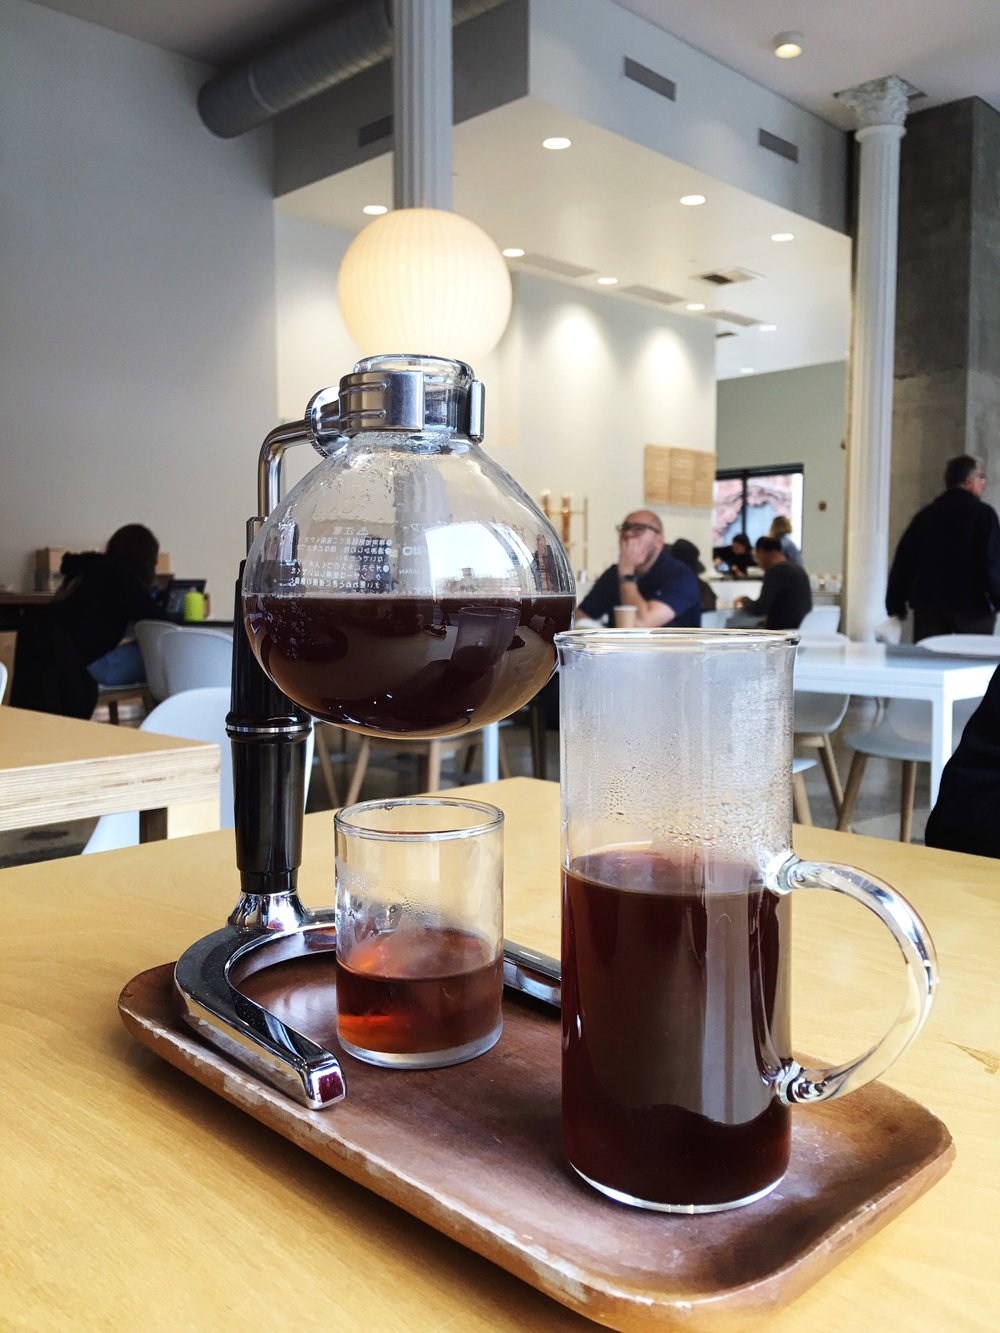 Syphon Coffee from Blue Bottle Coffee in the Bradury Building